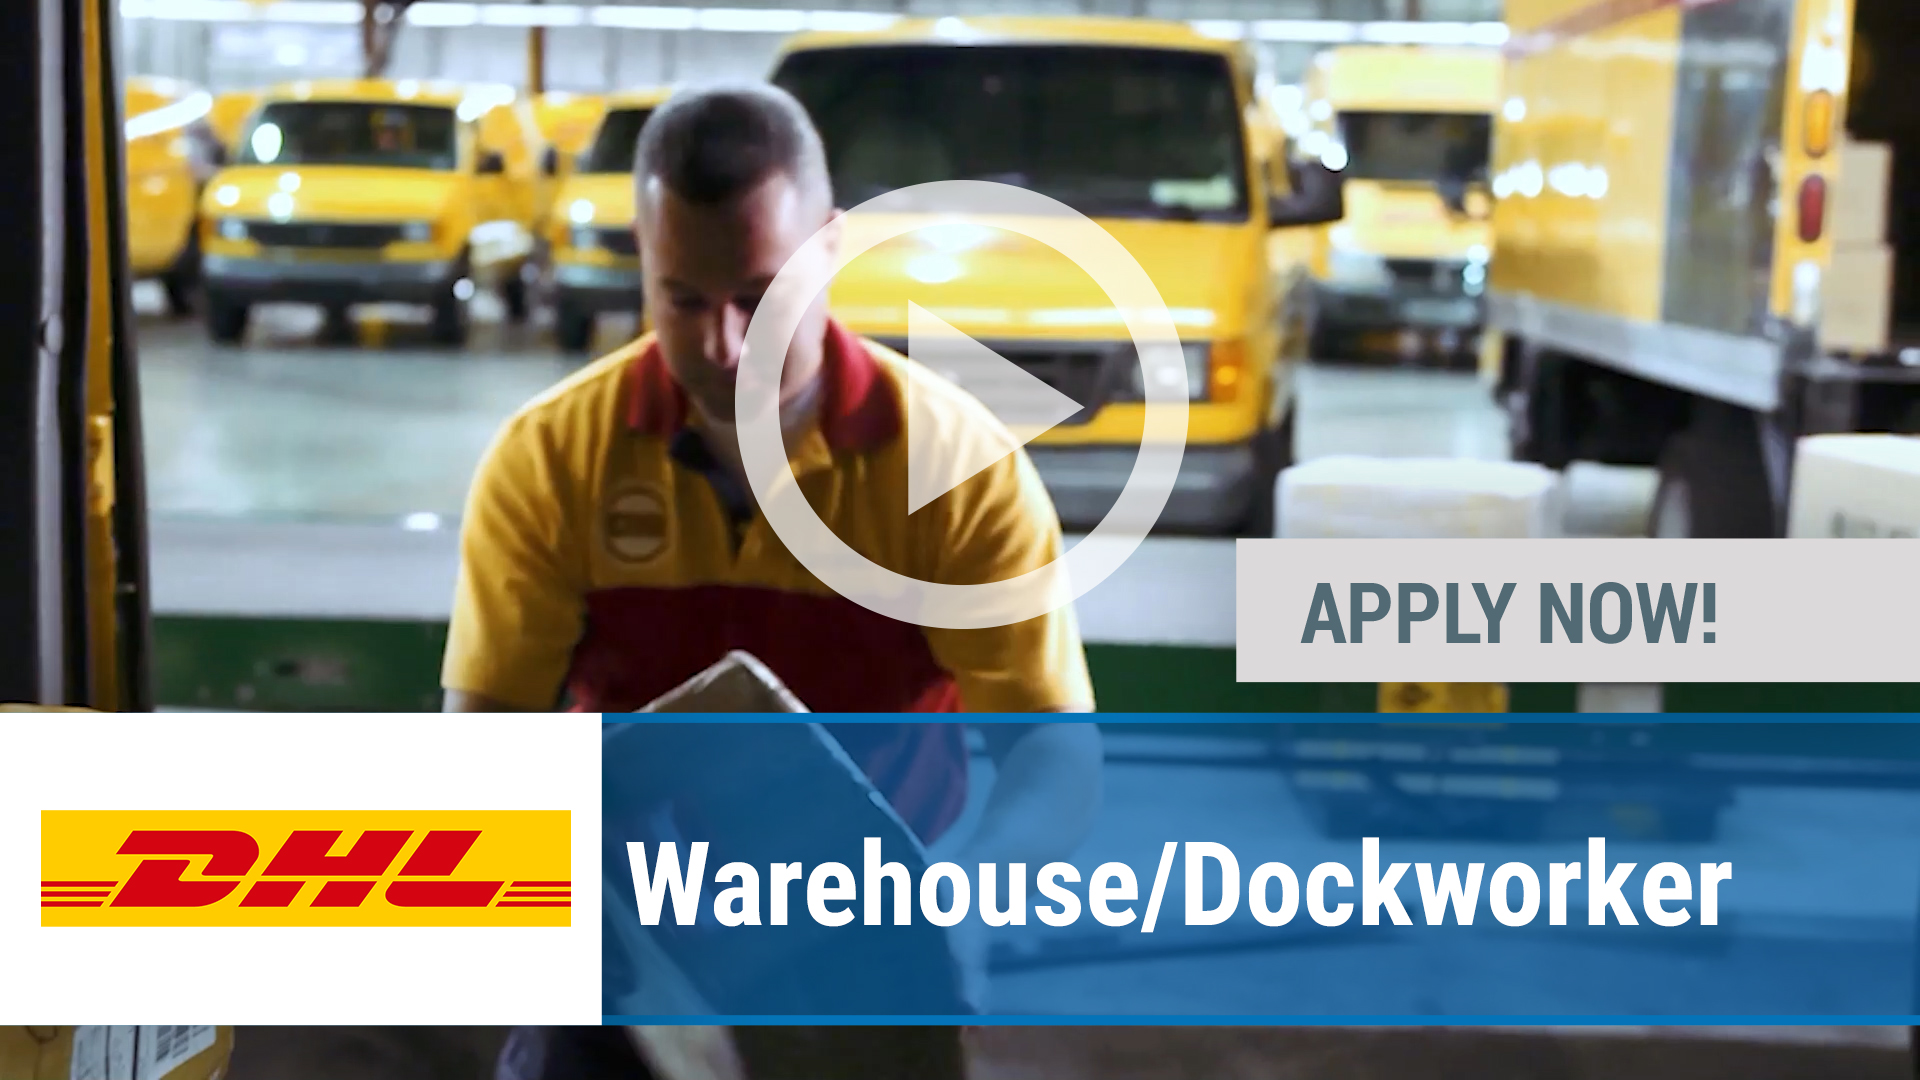 Watch our careers video for available job opening Warehouse_Dockworker in Los Angeles, CA, USA